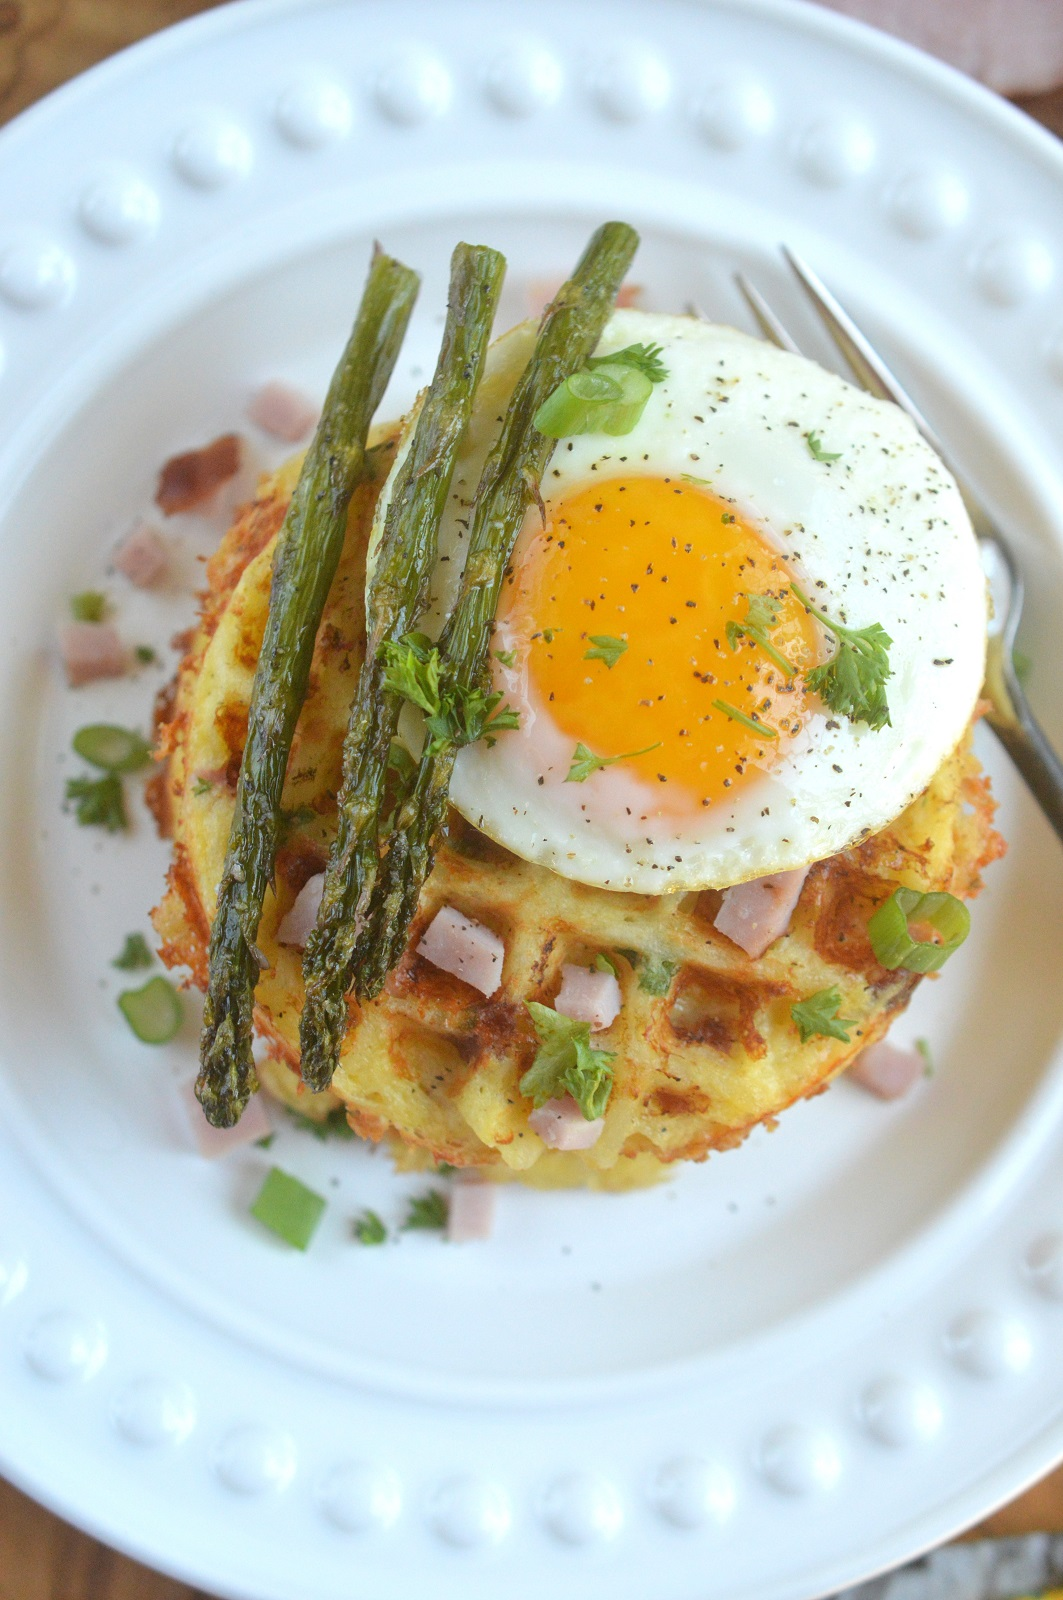 Ham & Cheese Hash Brown Waffles (perfect for brucnh dressed up with an egg and roasted asparagus)